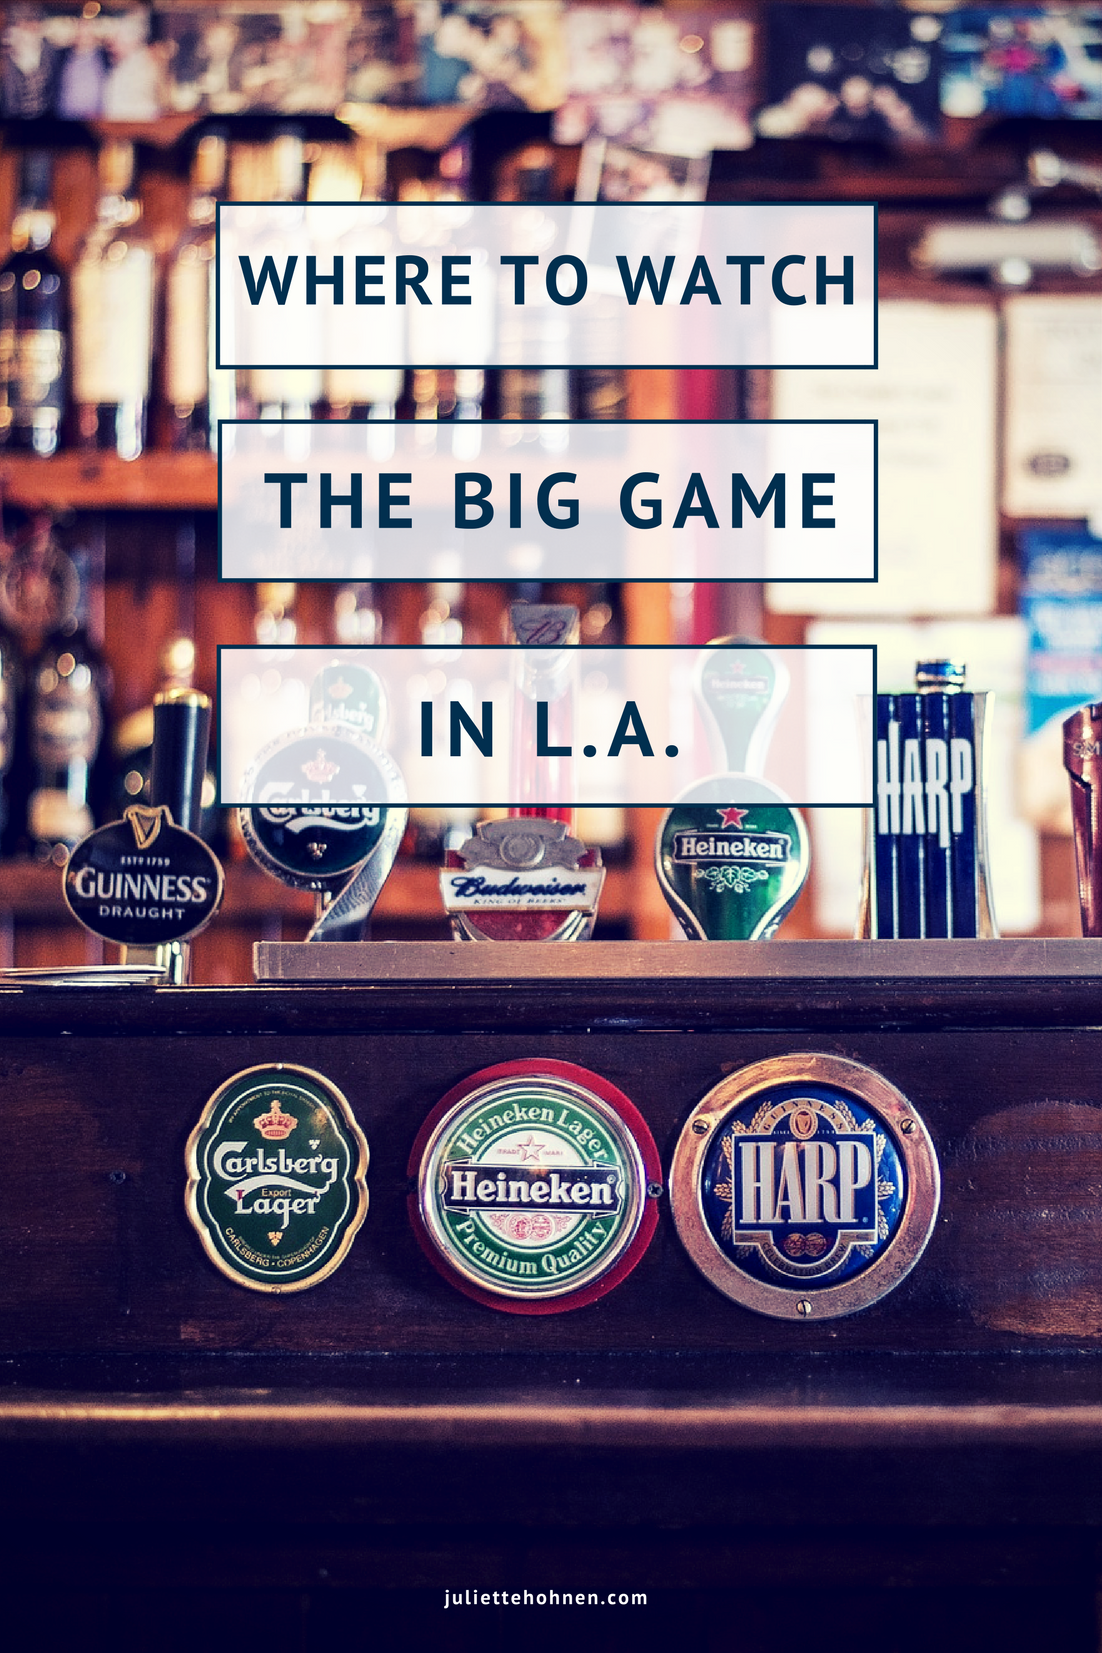 Where to watch the big game in L.A.